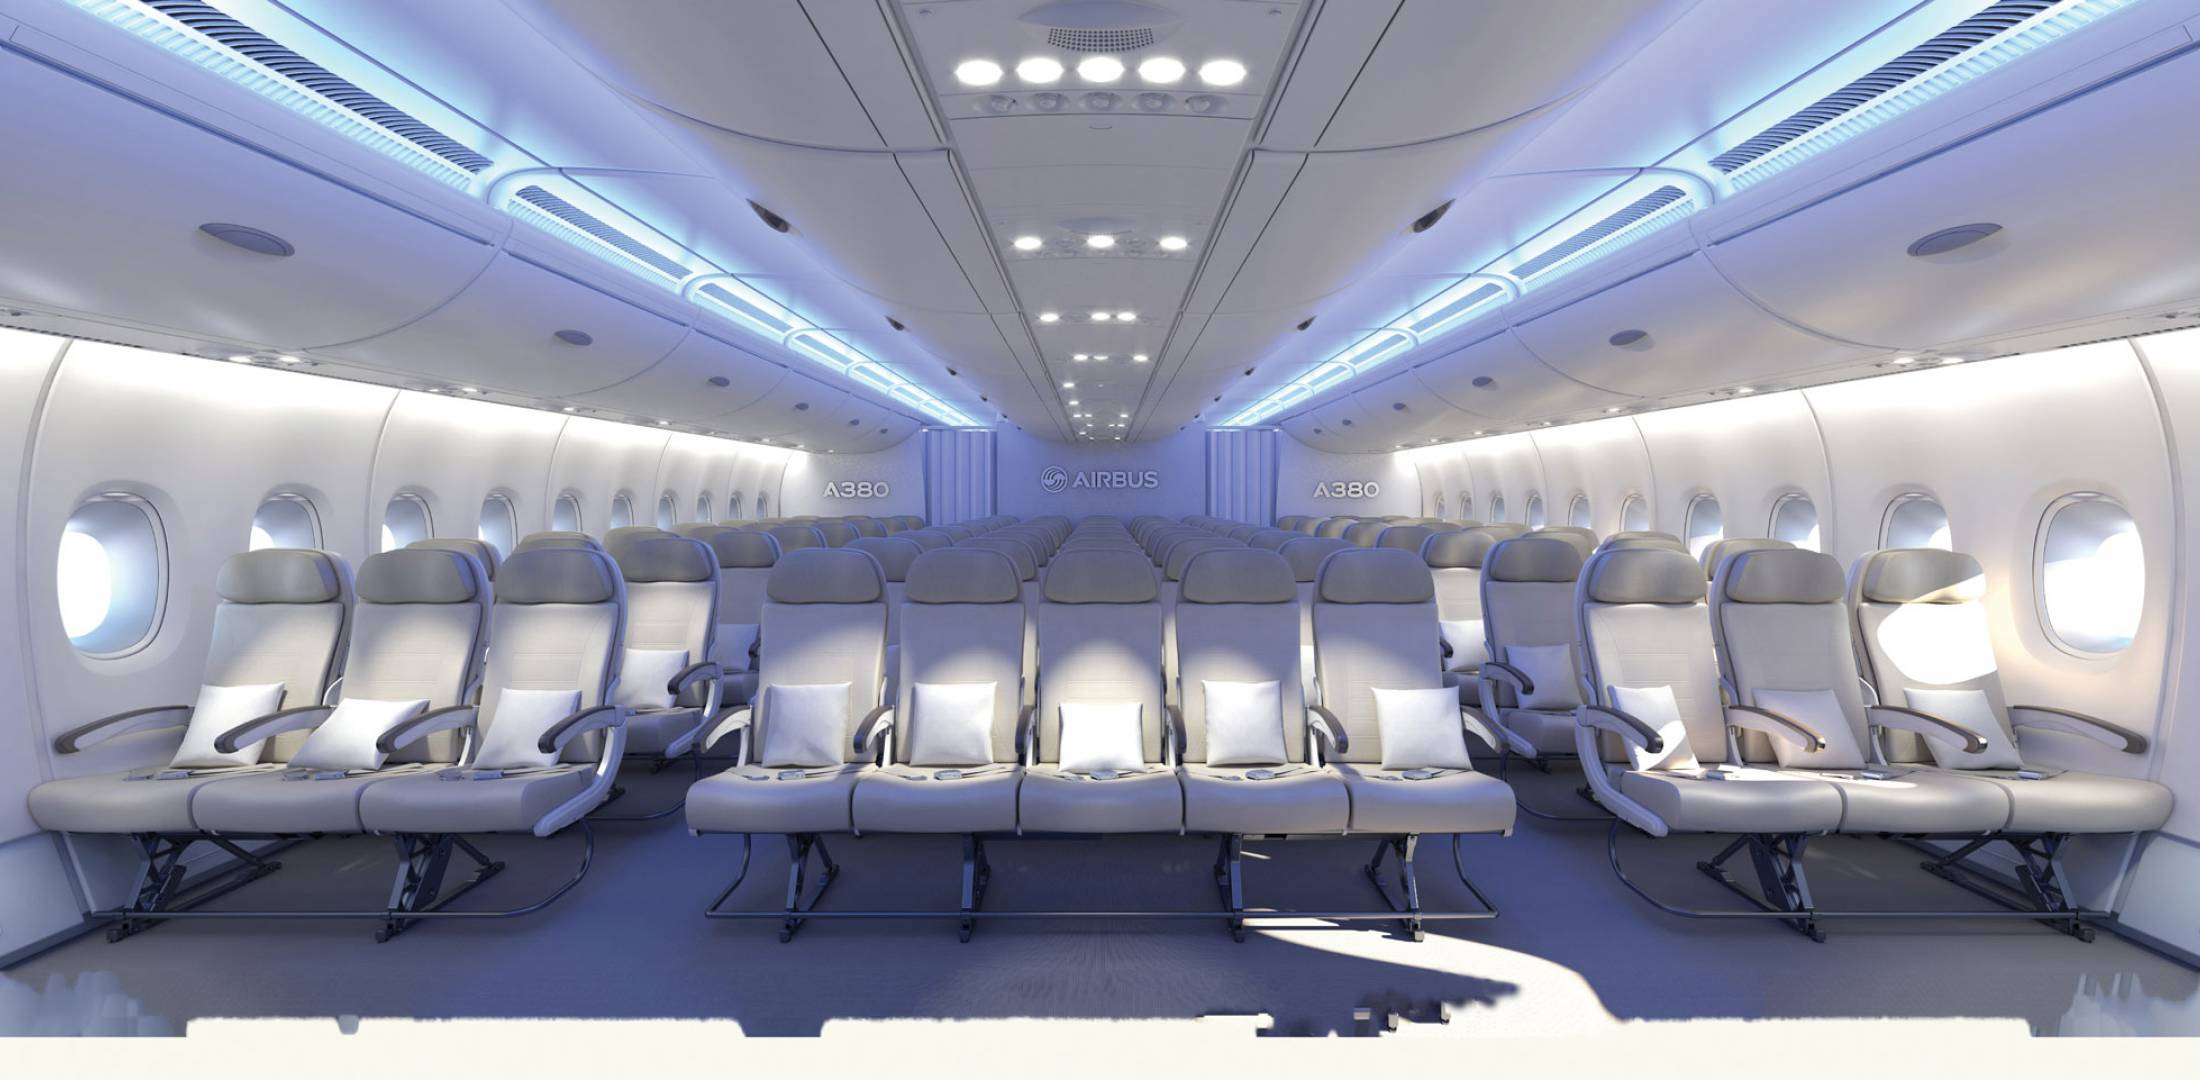 Airbus Details A380 11 Abreast Option Air Transport News